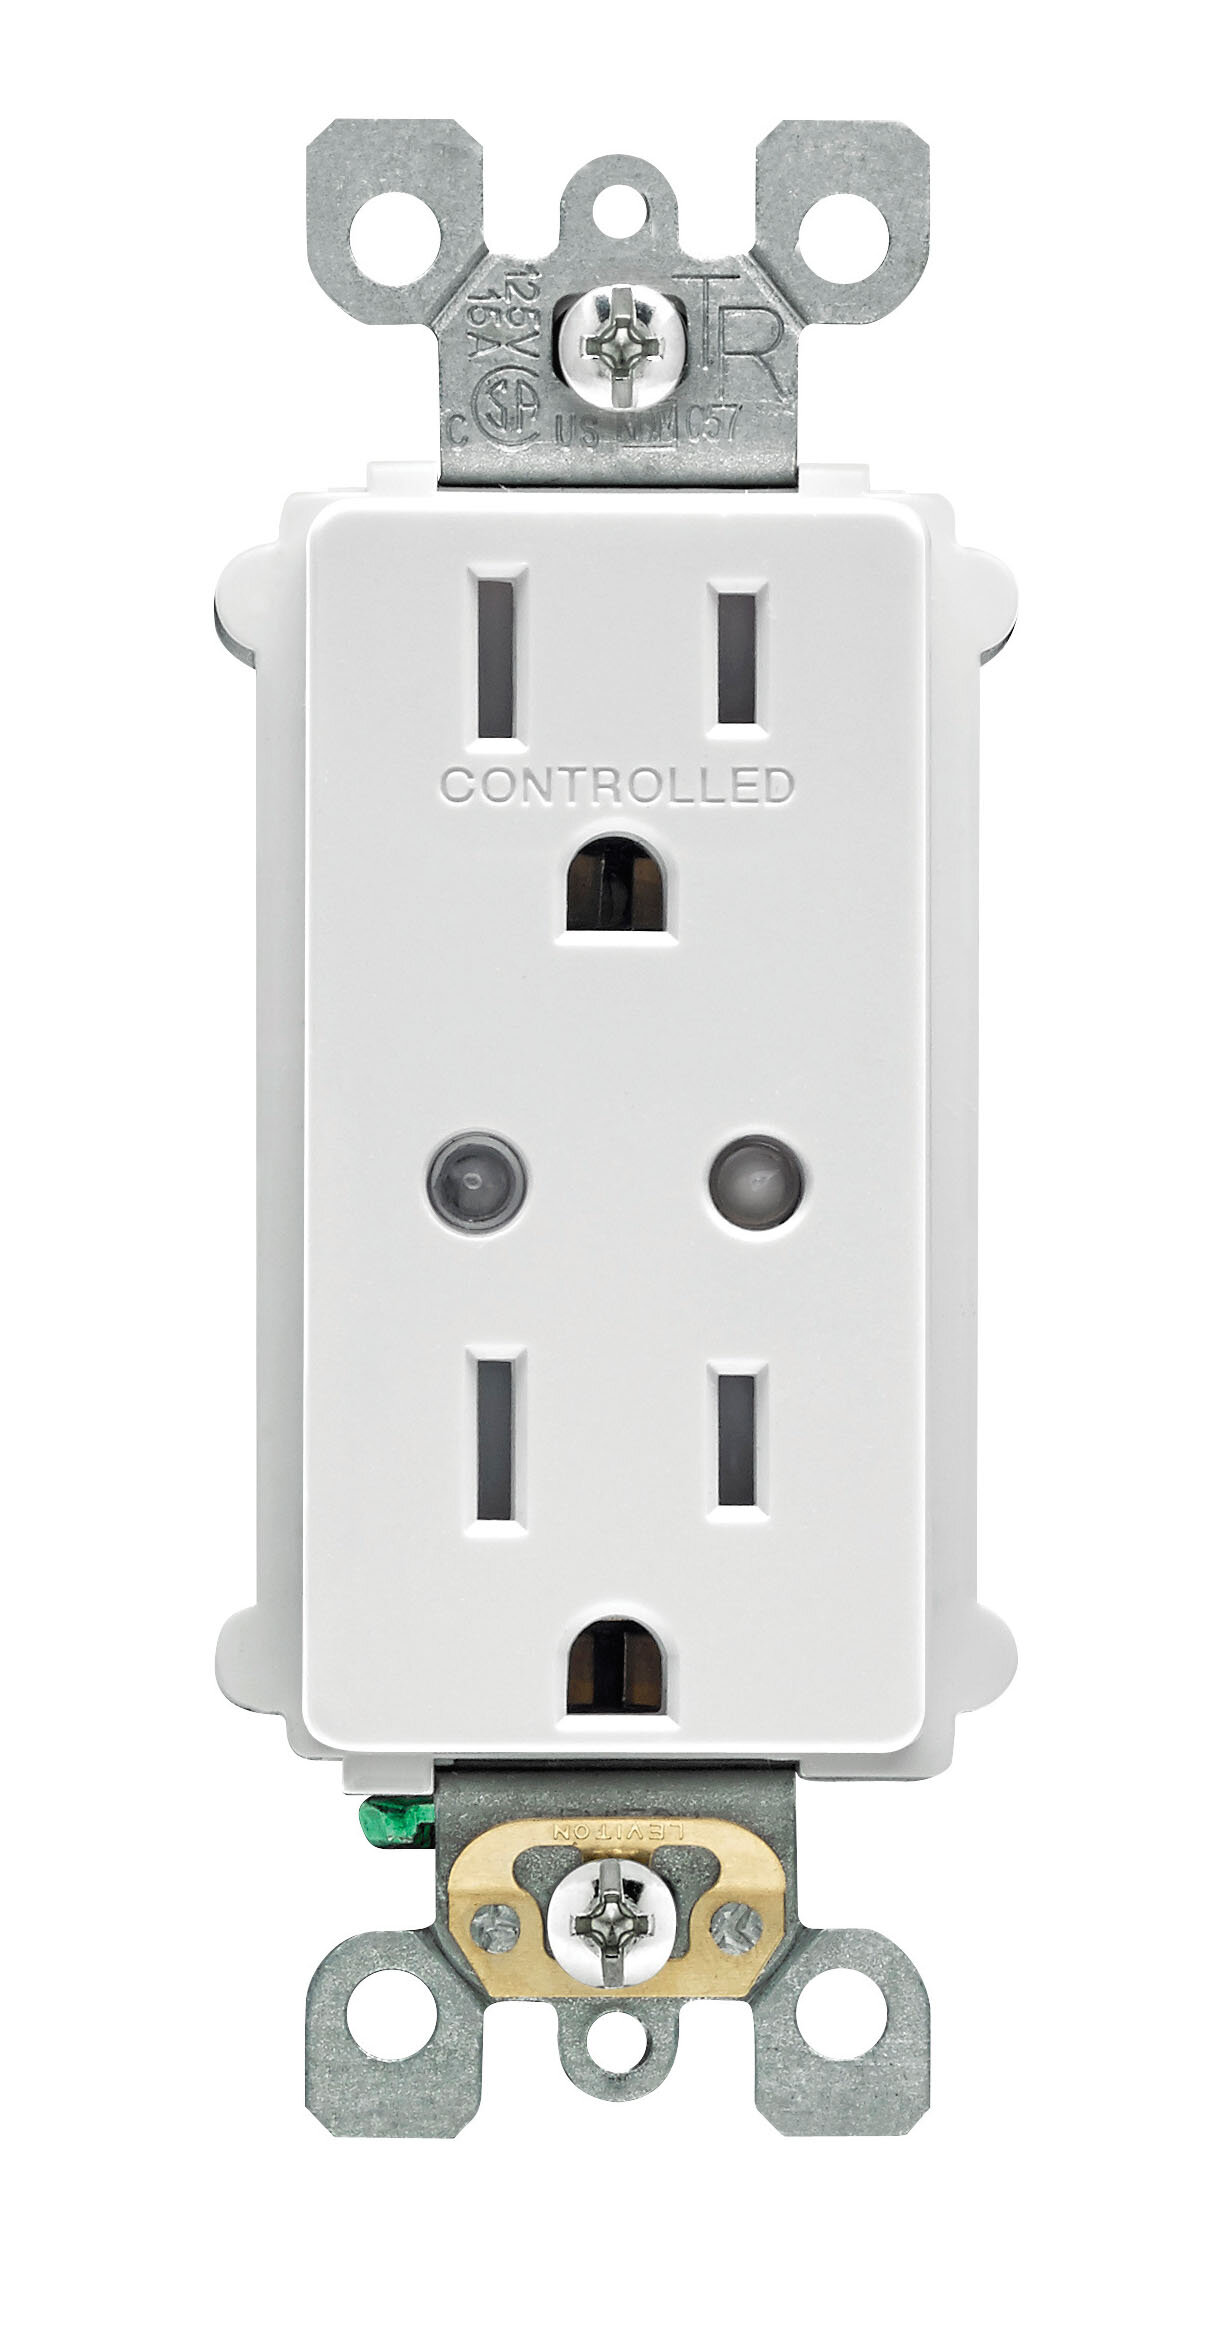 Leviton Decora Smart 15 Amp Tamper Resistant Split Duplex Receptacle Male Plug Wiring Diagram Wall Mounted Outlet With Z Wave Plus Technology Wayfair